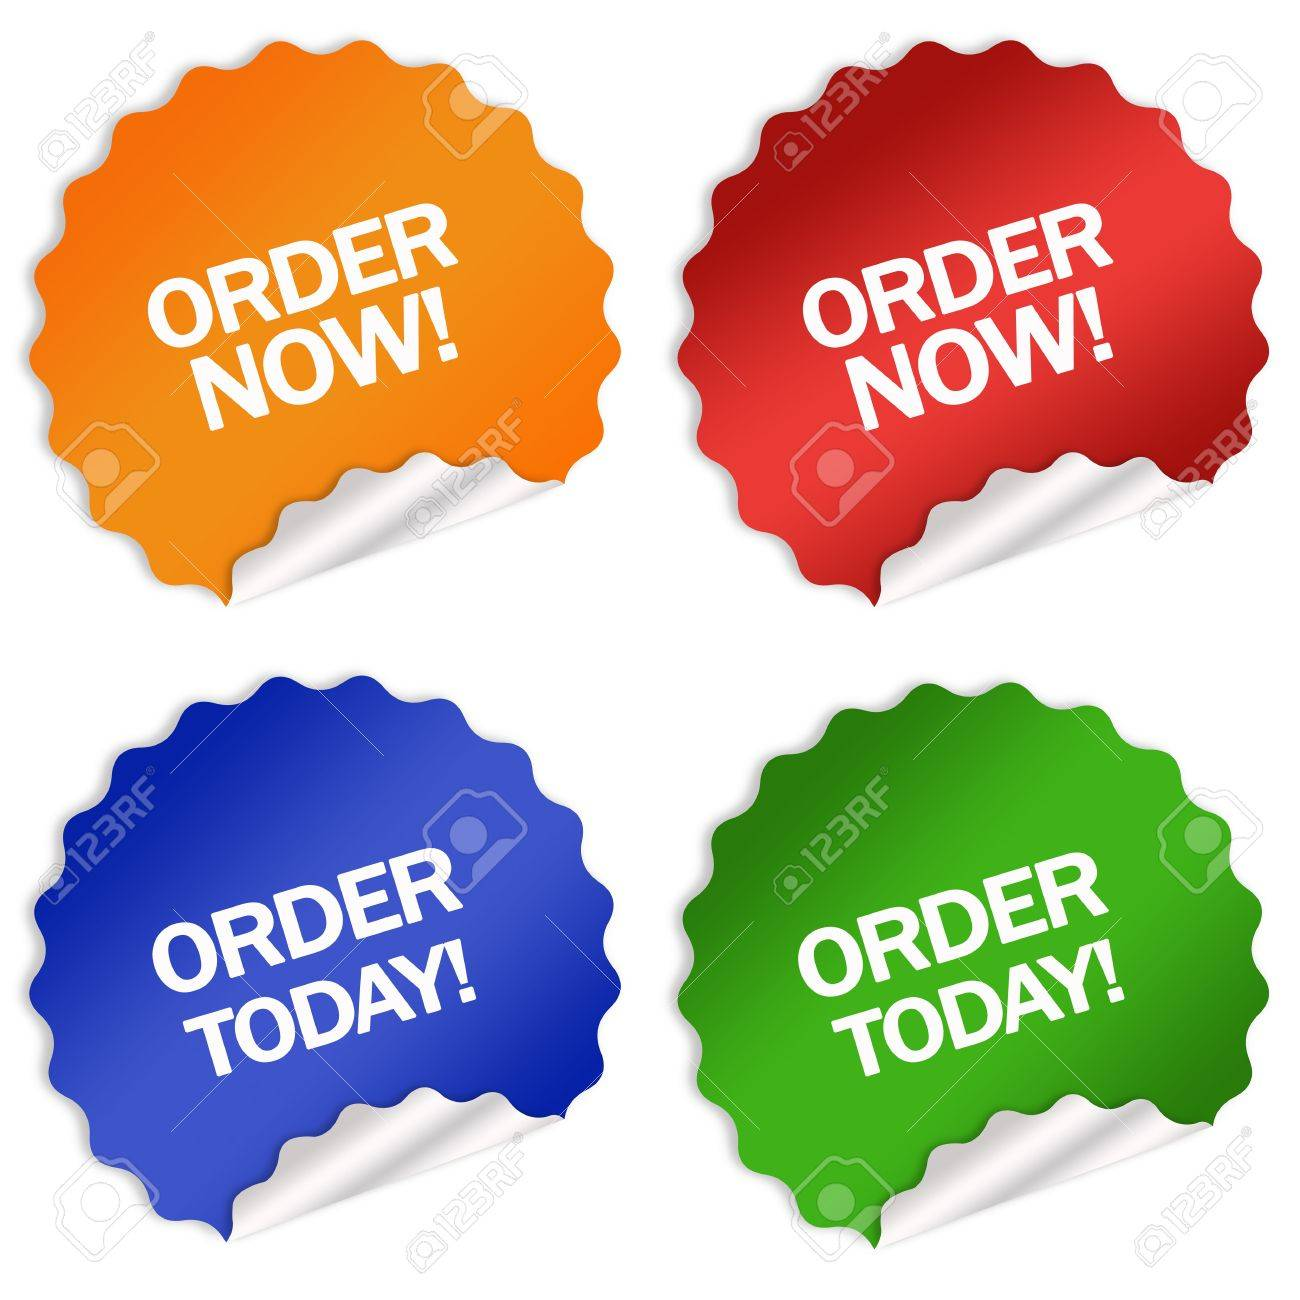 Order now today sticker Stock Photo - 6250914